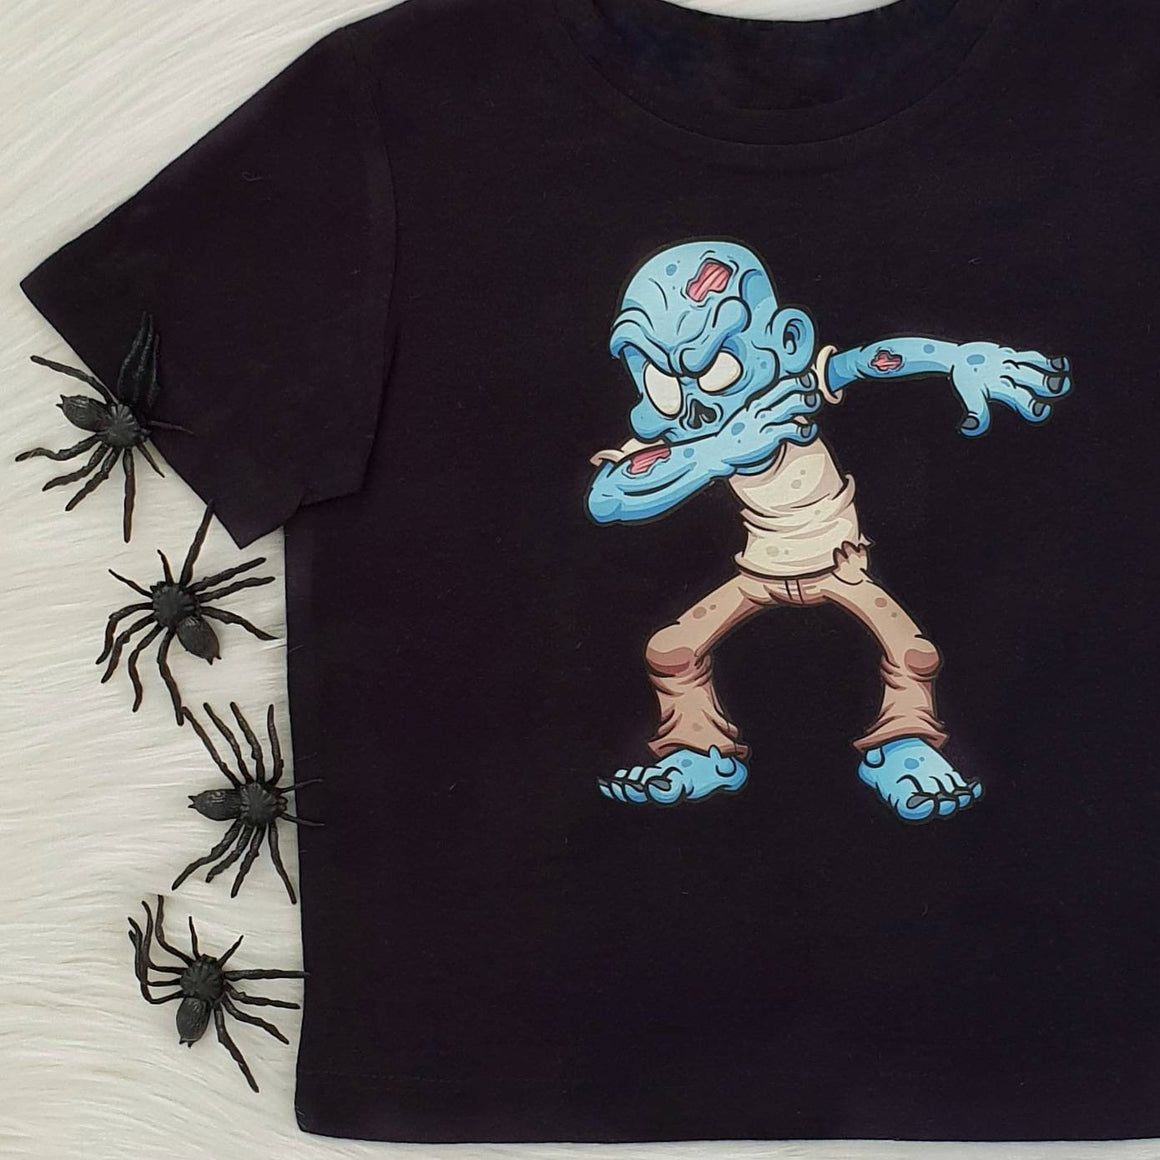 Dabbing Zombie Halloween T-Shirt For Boys, Halloween Costume, Dab, Dabbing Zombie, Boys Halloween Costume, Zombie T-shirt, Halloween T-Shirt